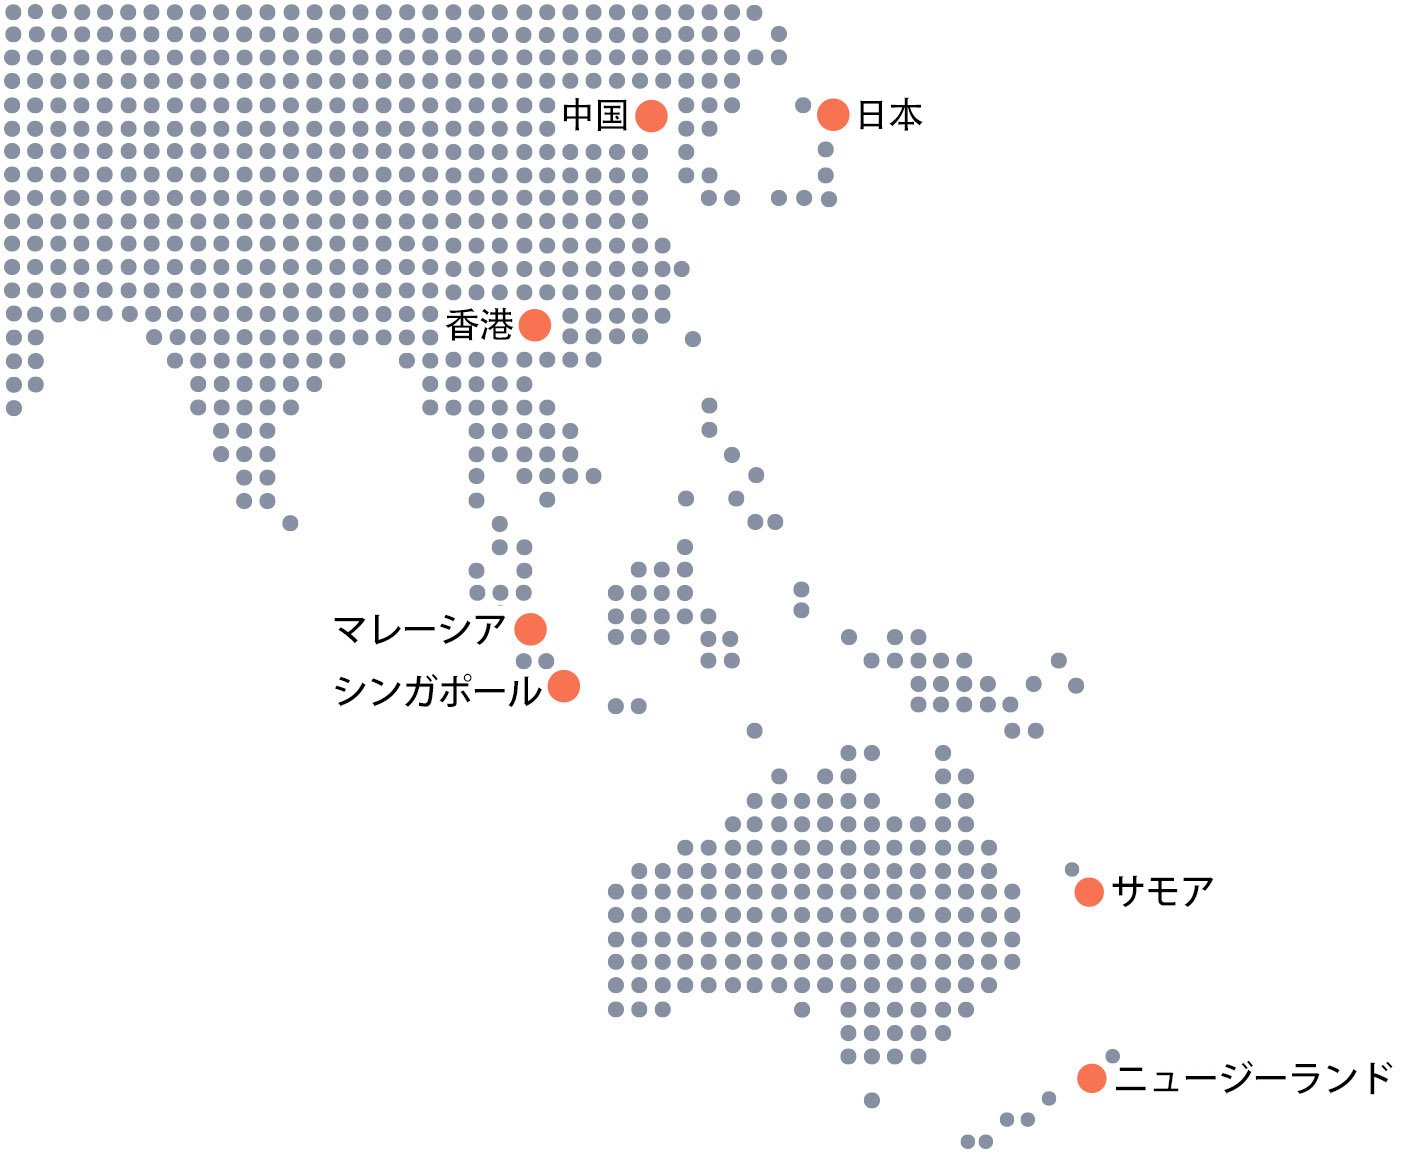 cp-global-network-japanese